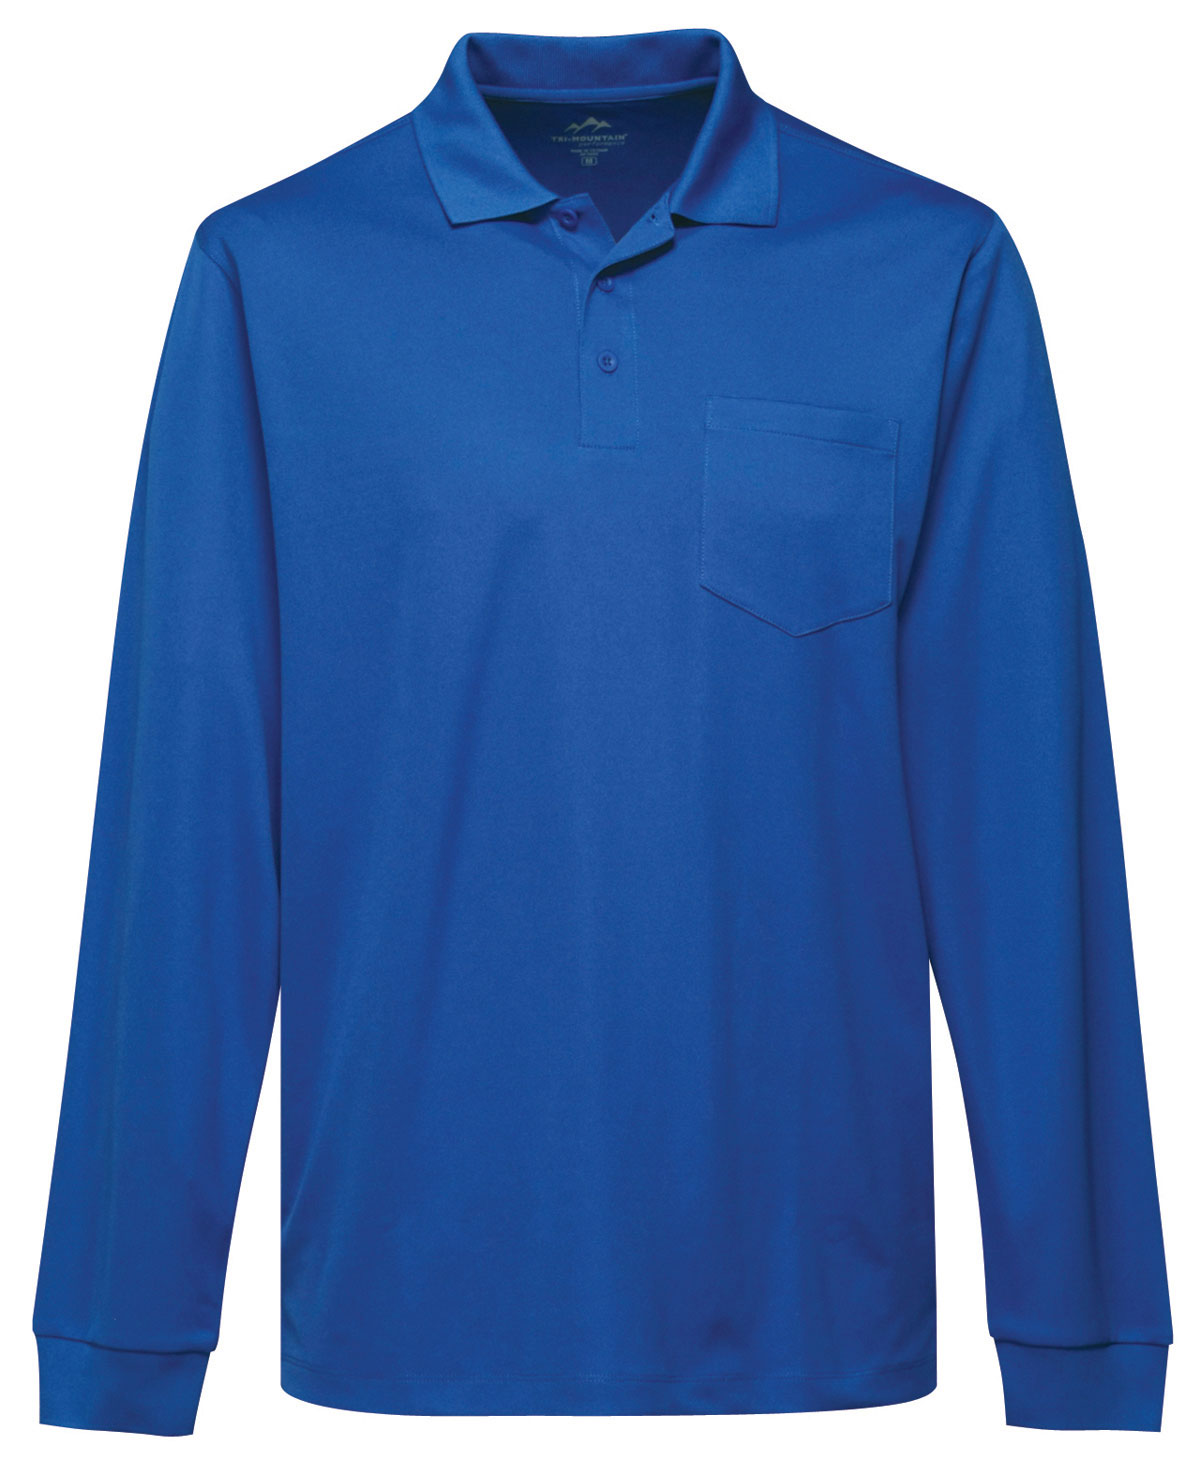 Adult Vital Pocket Long Sleeve